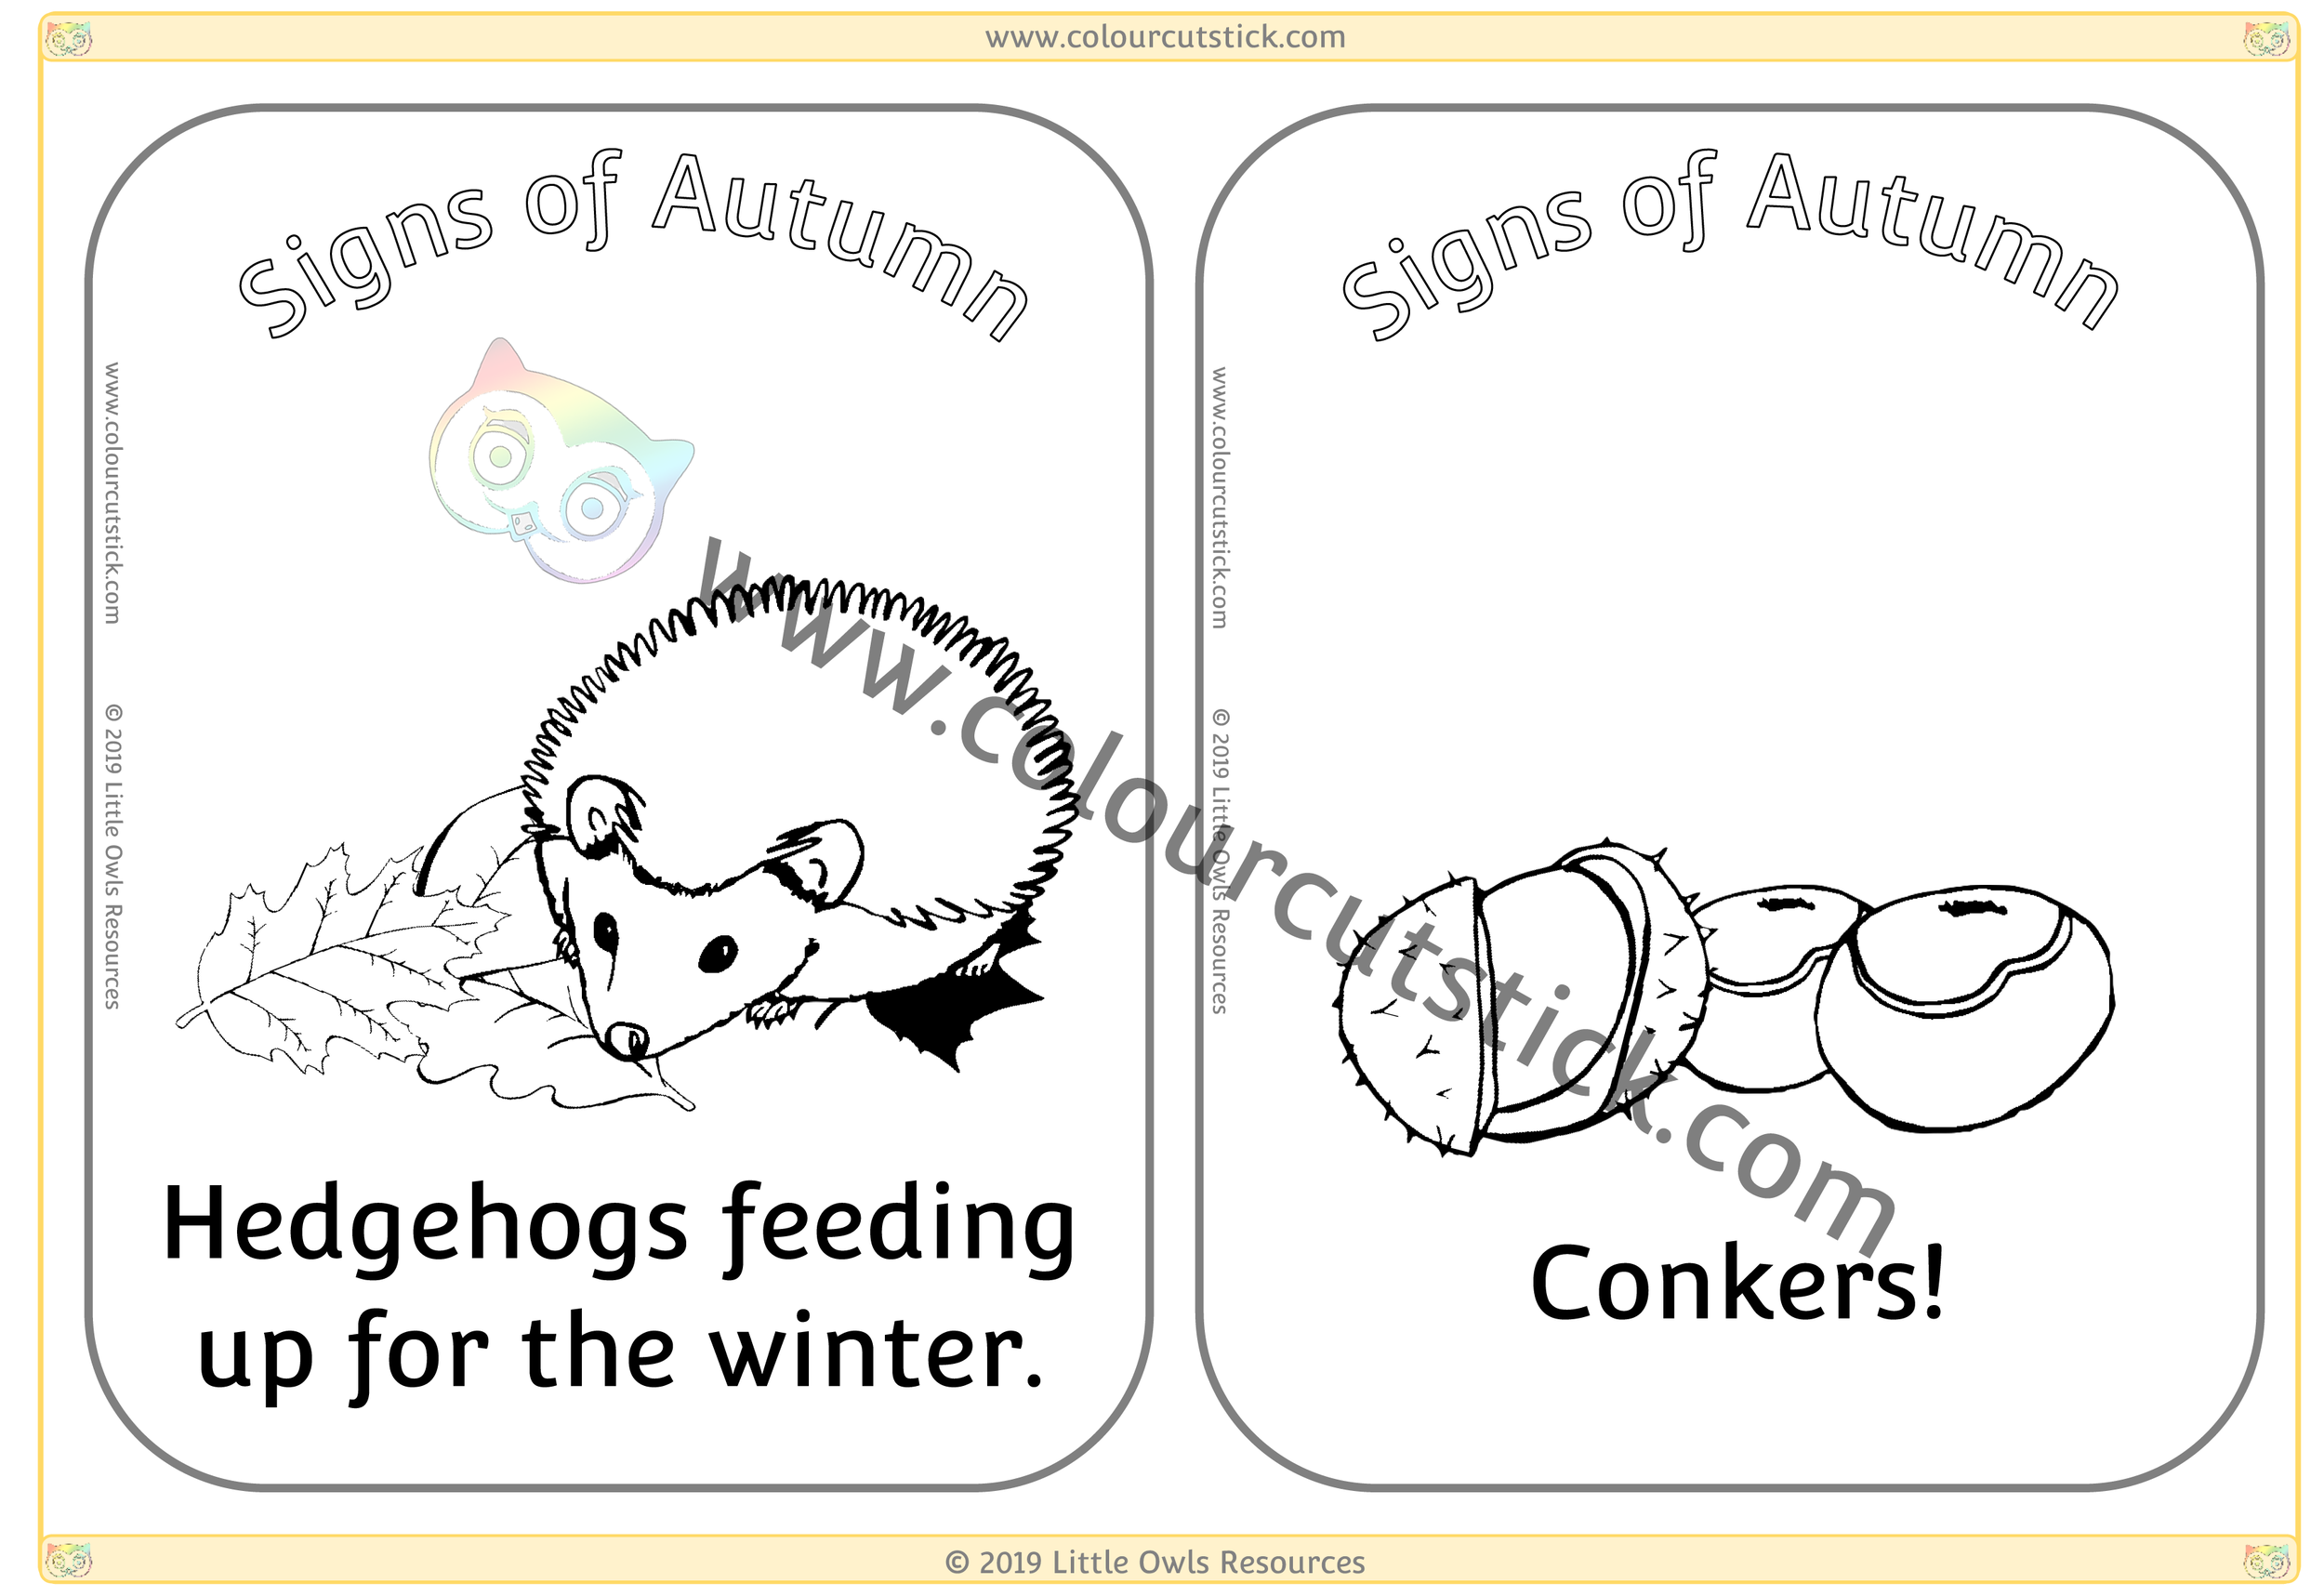 Hedgehogs feeding up for winter & Conkers -